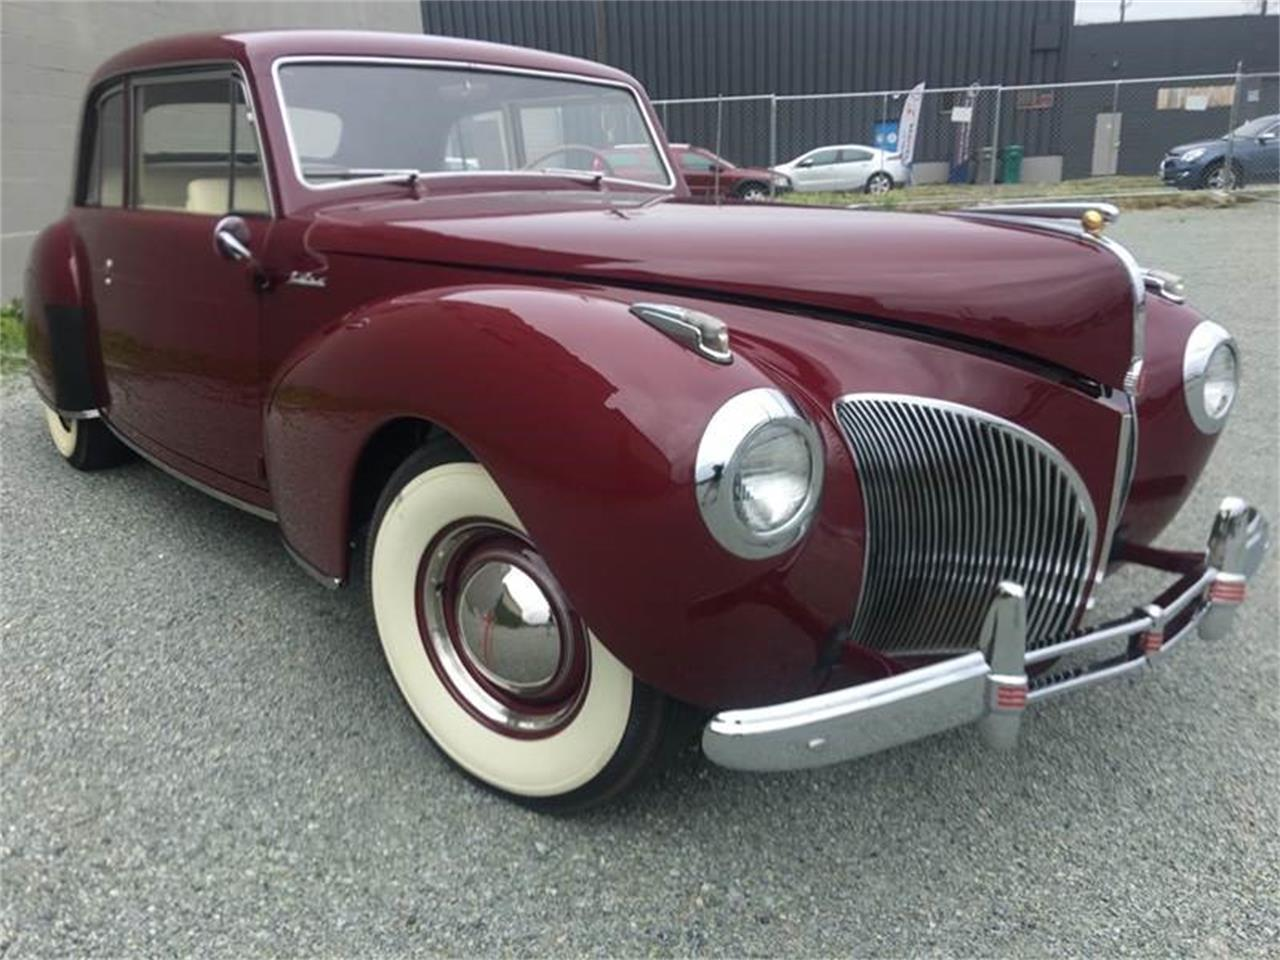 1941 Lincoln 2-Dr Coupe (CC-1249123) for sale in TACOMA, Washington